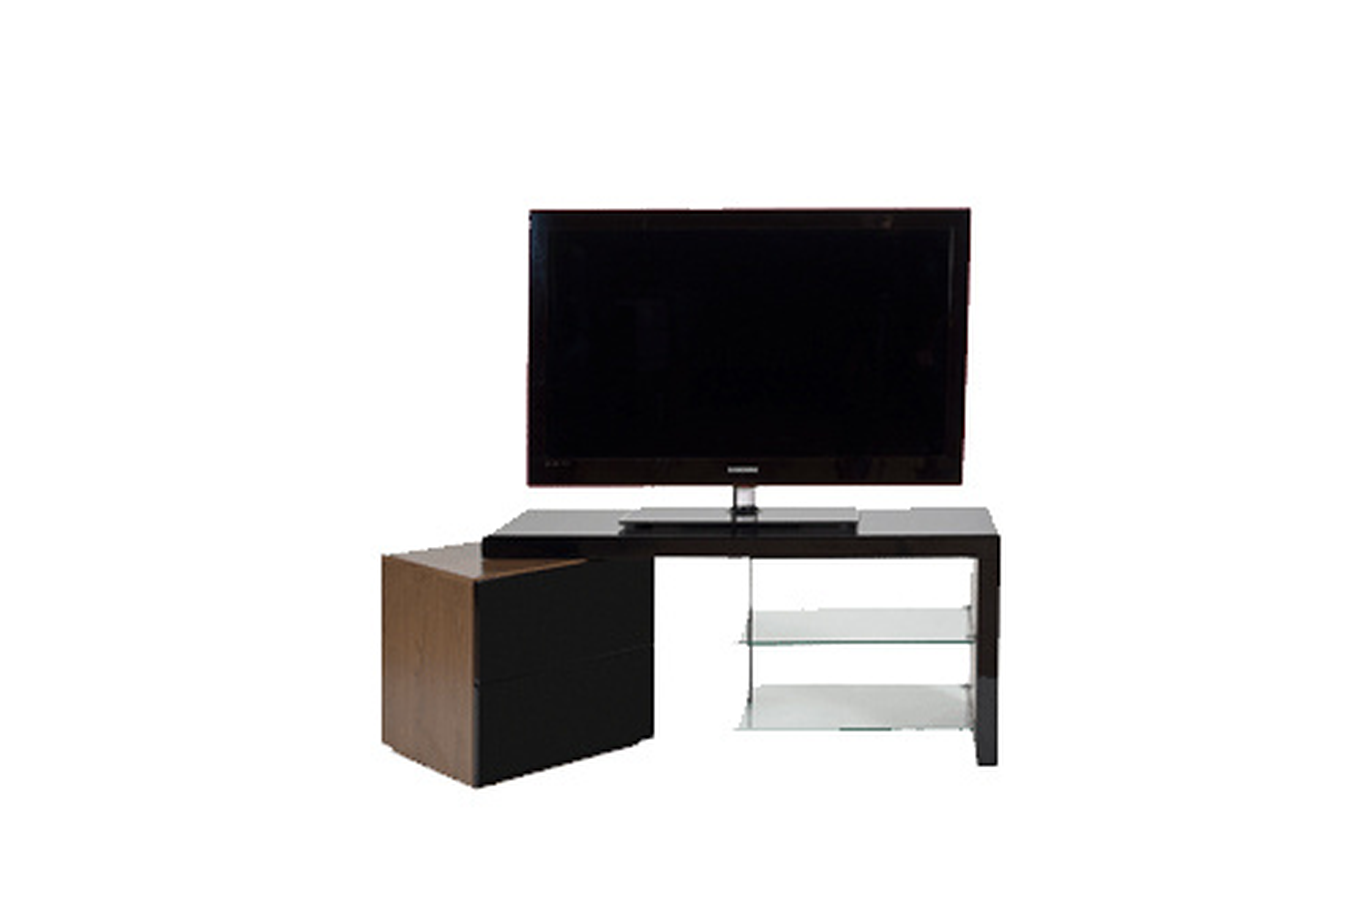 Meuble TV Ateca AT 359 QUARTZ BLACK  AT359 (3148572)  Dar -> Meuble Tv Ateca